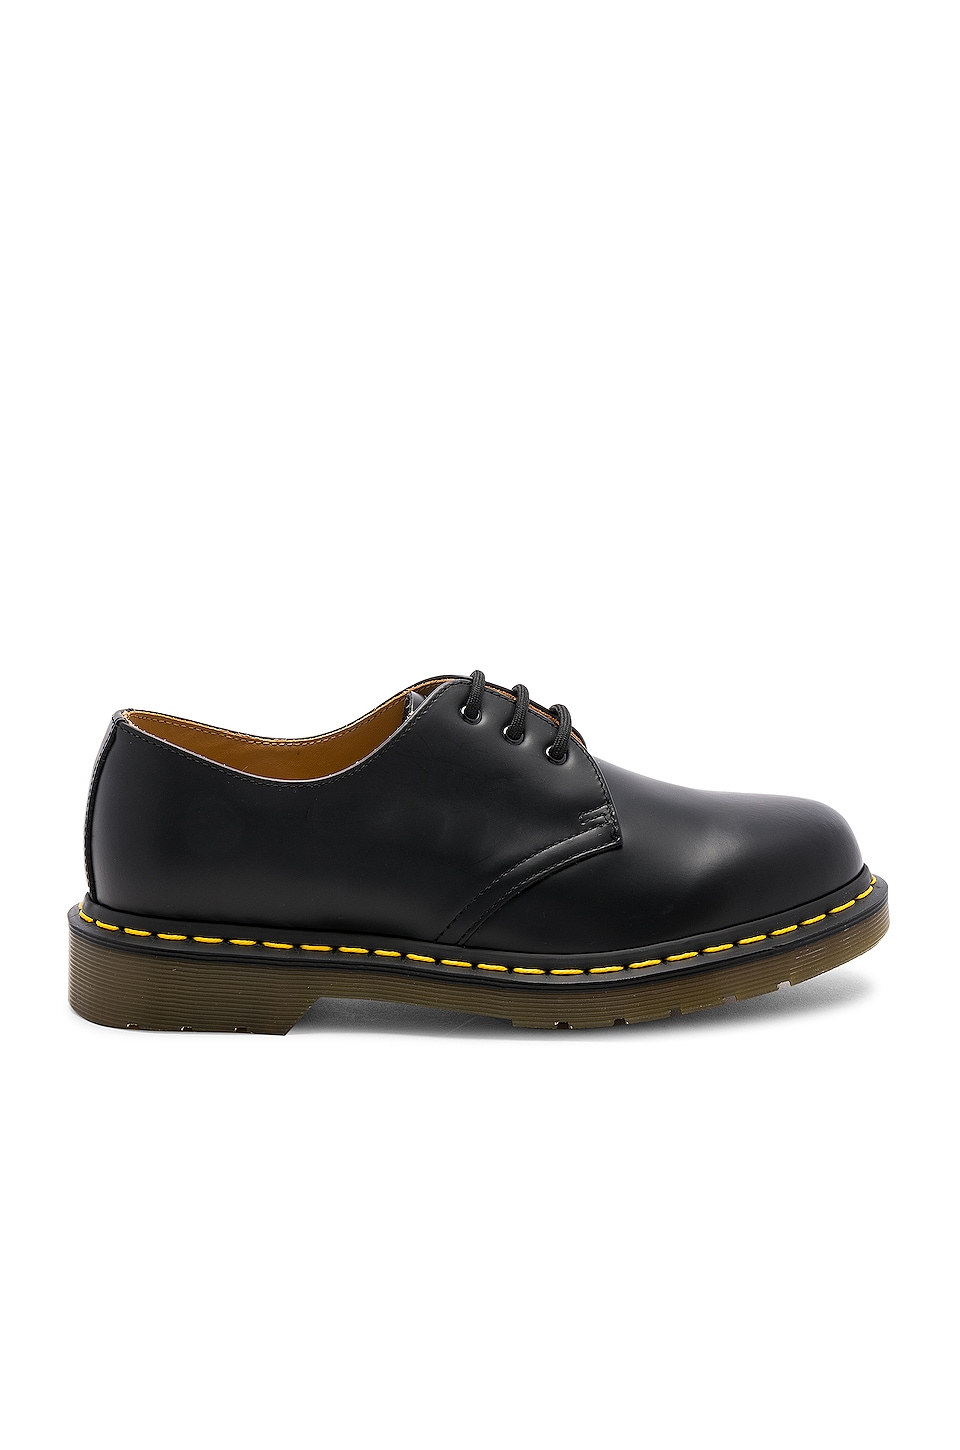 Dr. Martens CHAUSSURES 1461